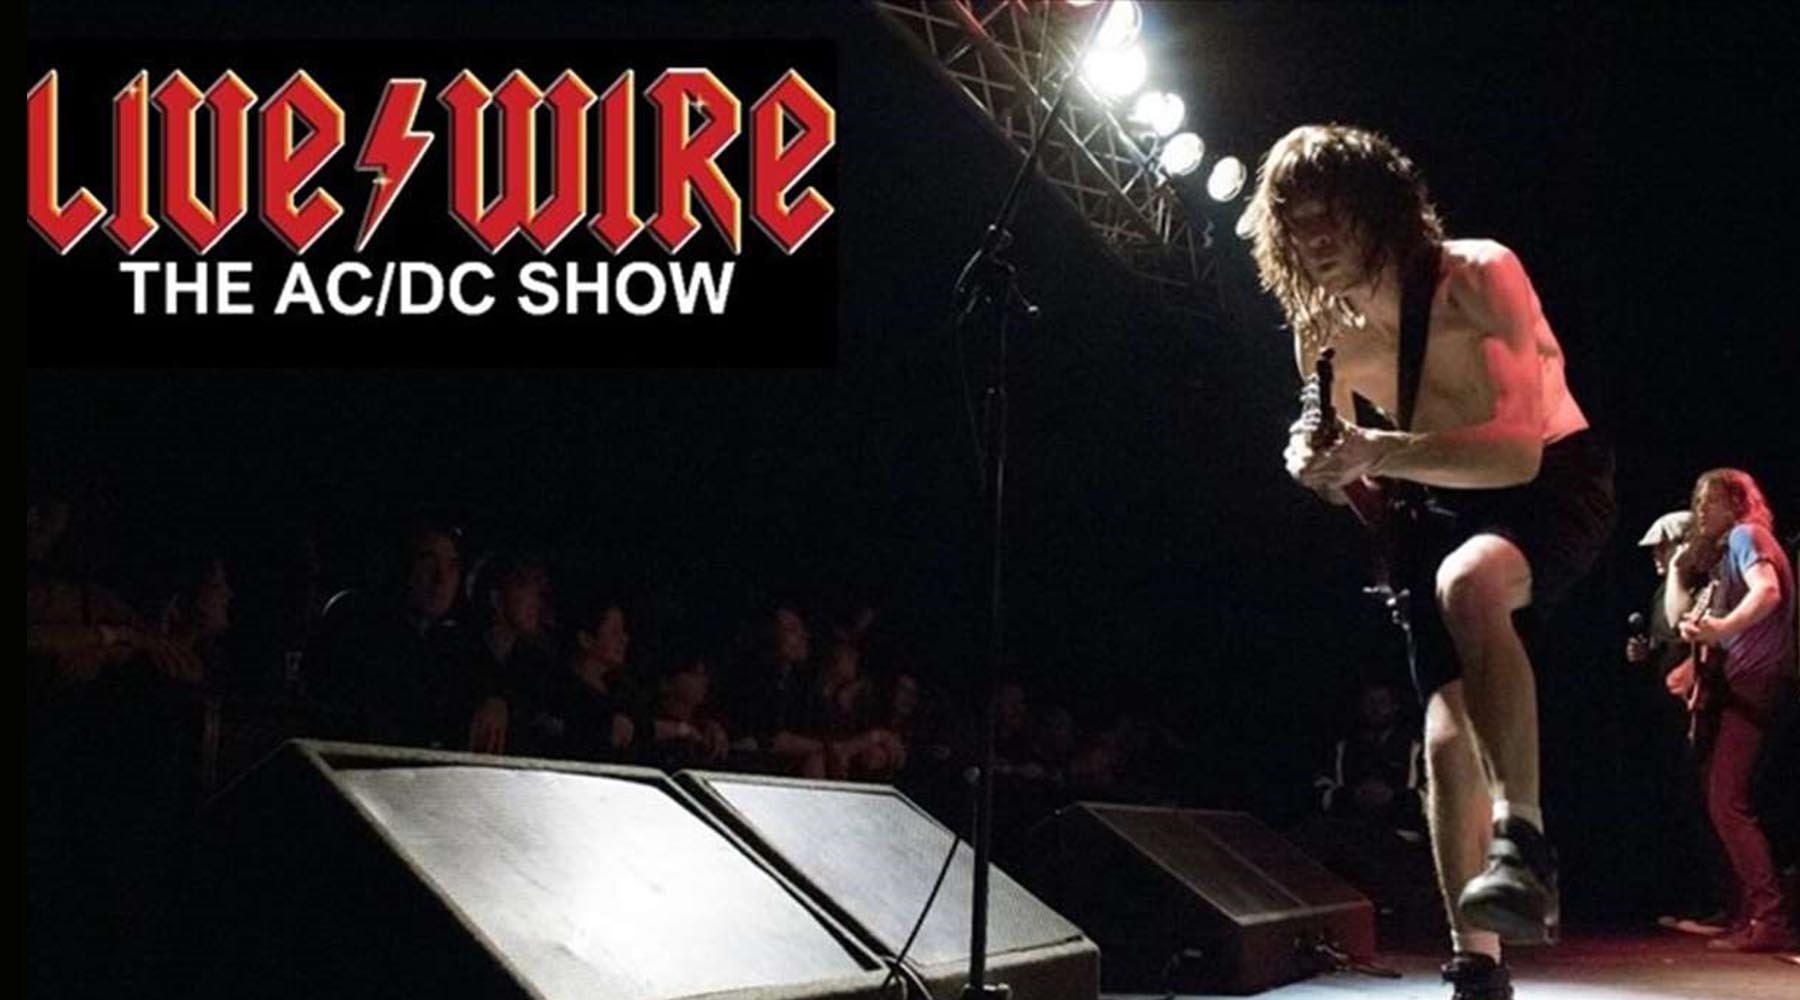 Live/Wire - The AC/DC Show